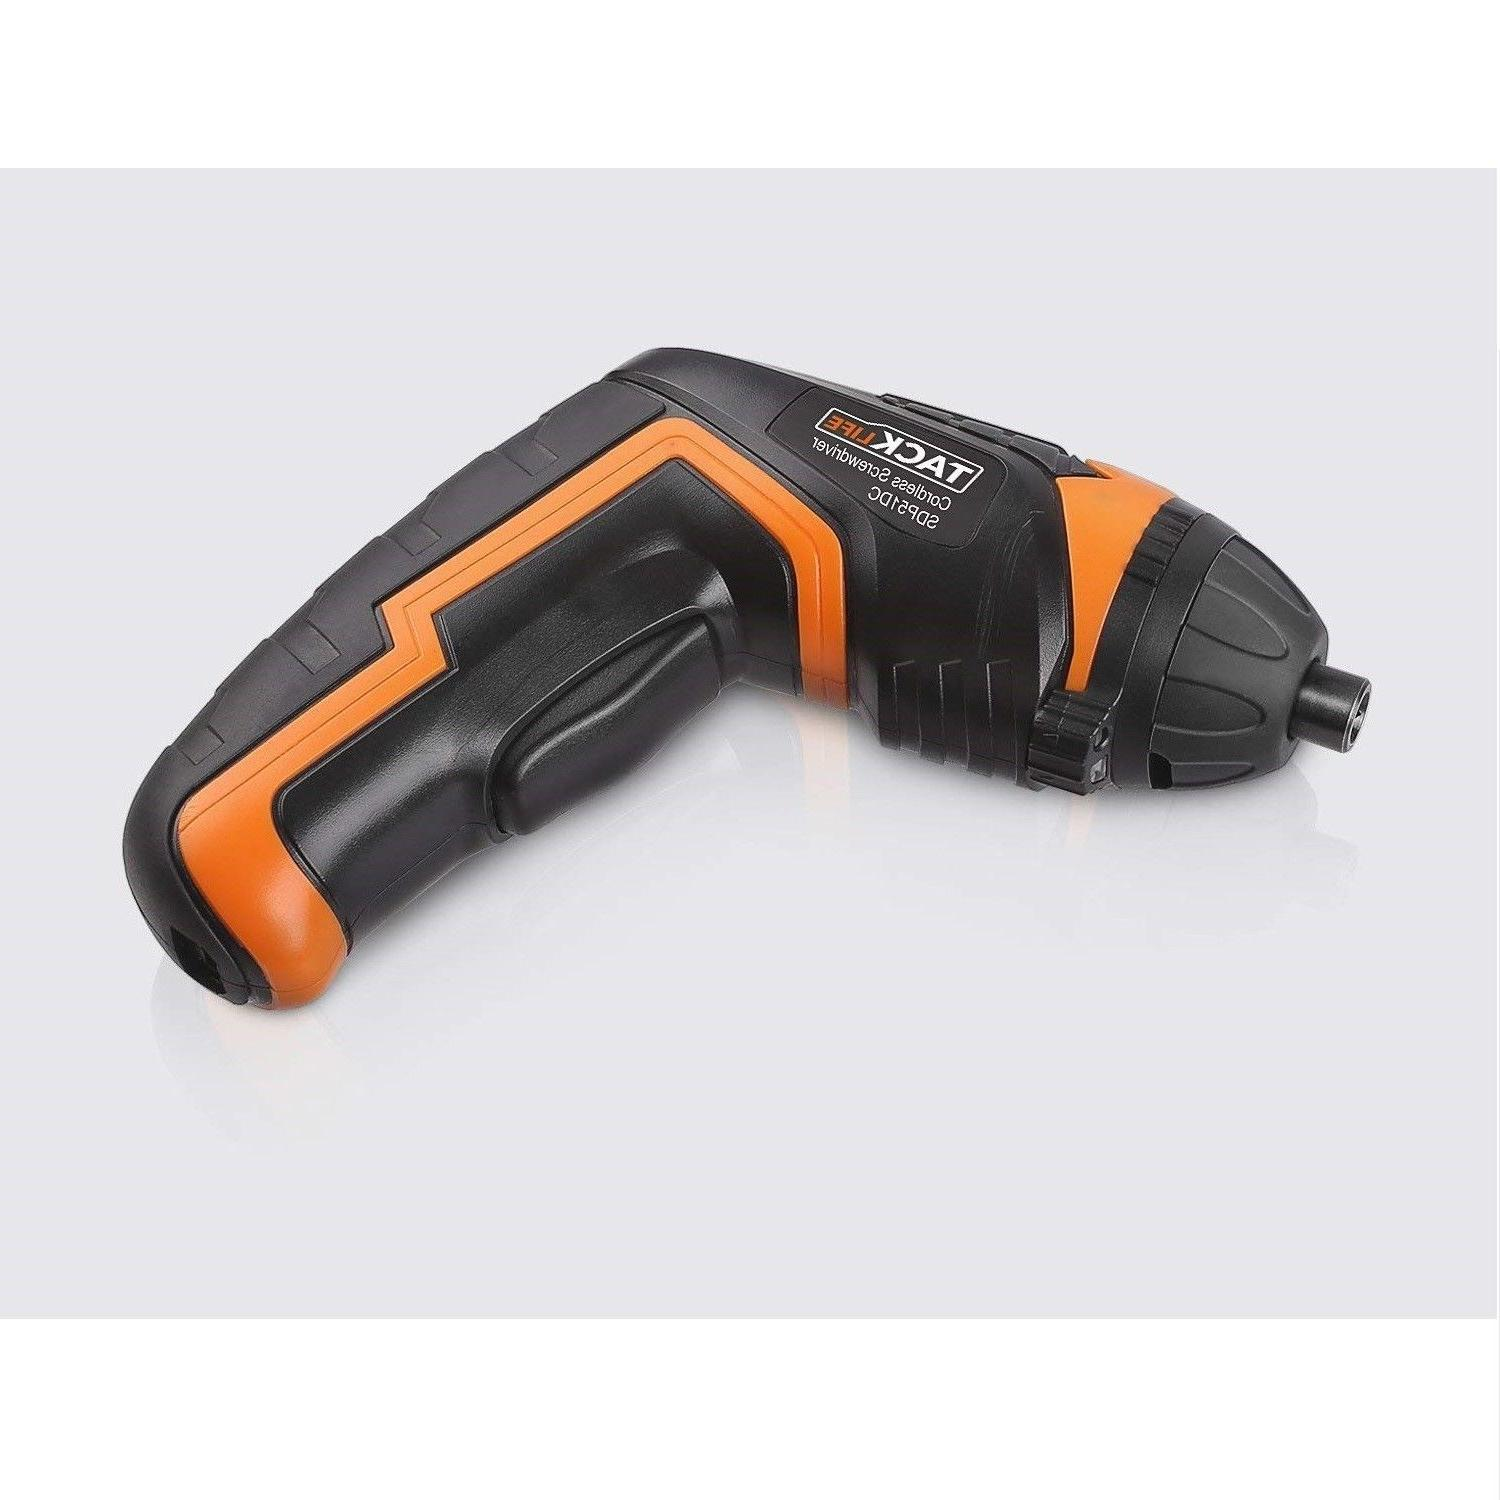 usb rechargeable cordless electric screwdriver right angle